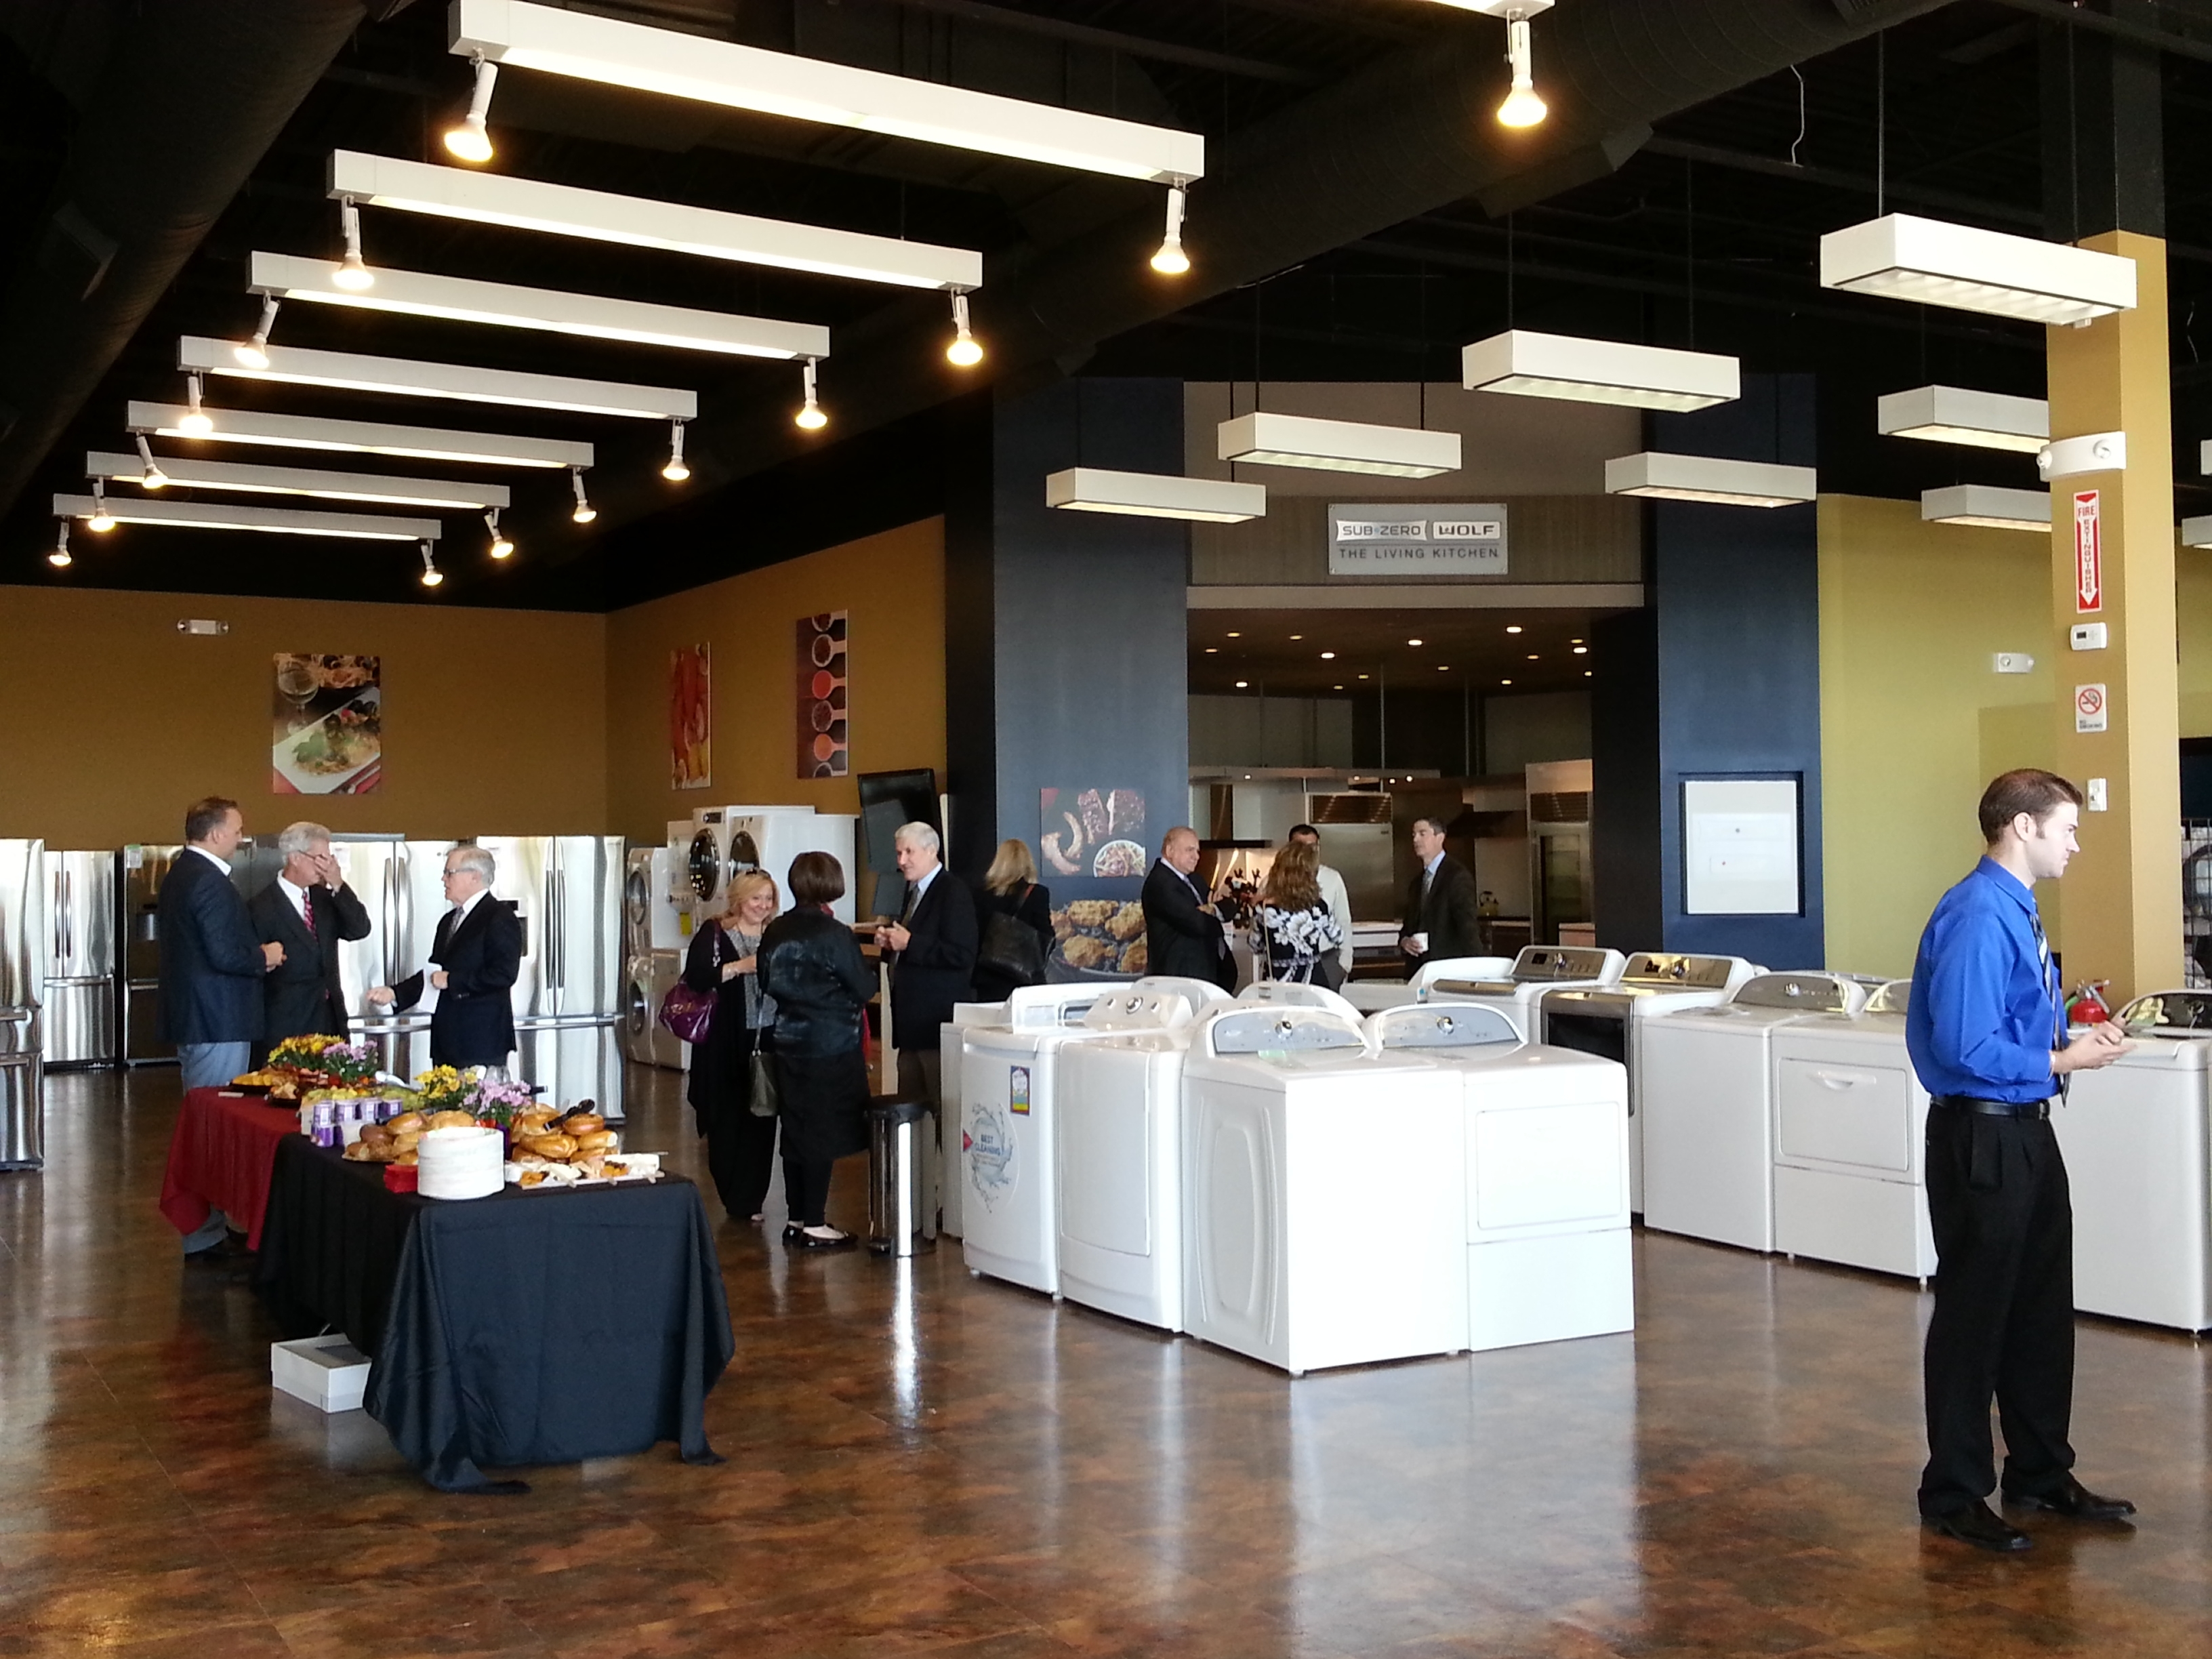 Furniture stores east brunswick nj - Karl S Appliance Celebrates Grand Opening Of East Brunswick Store